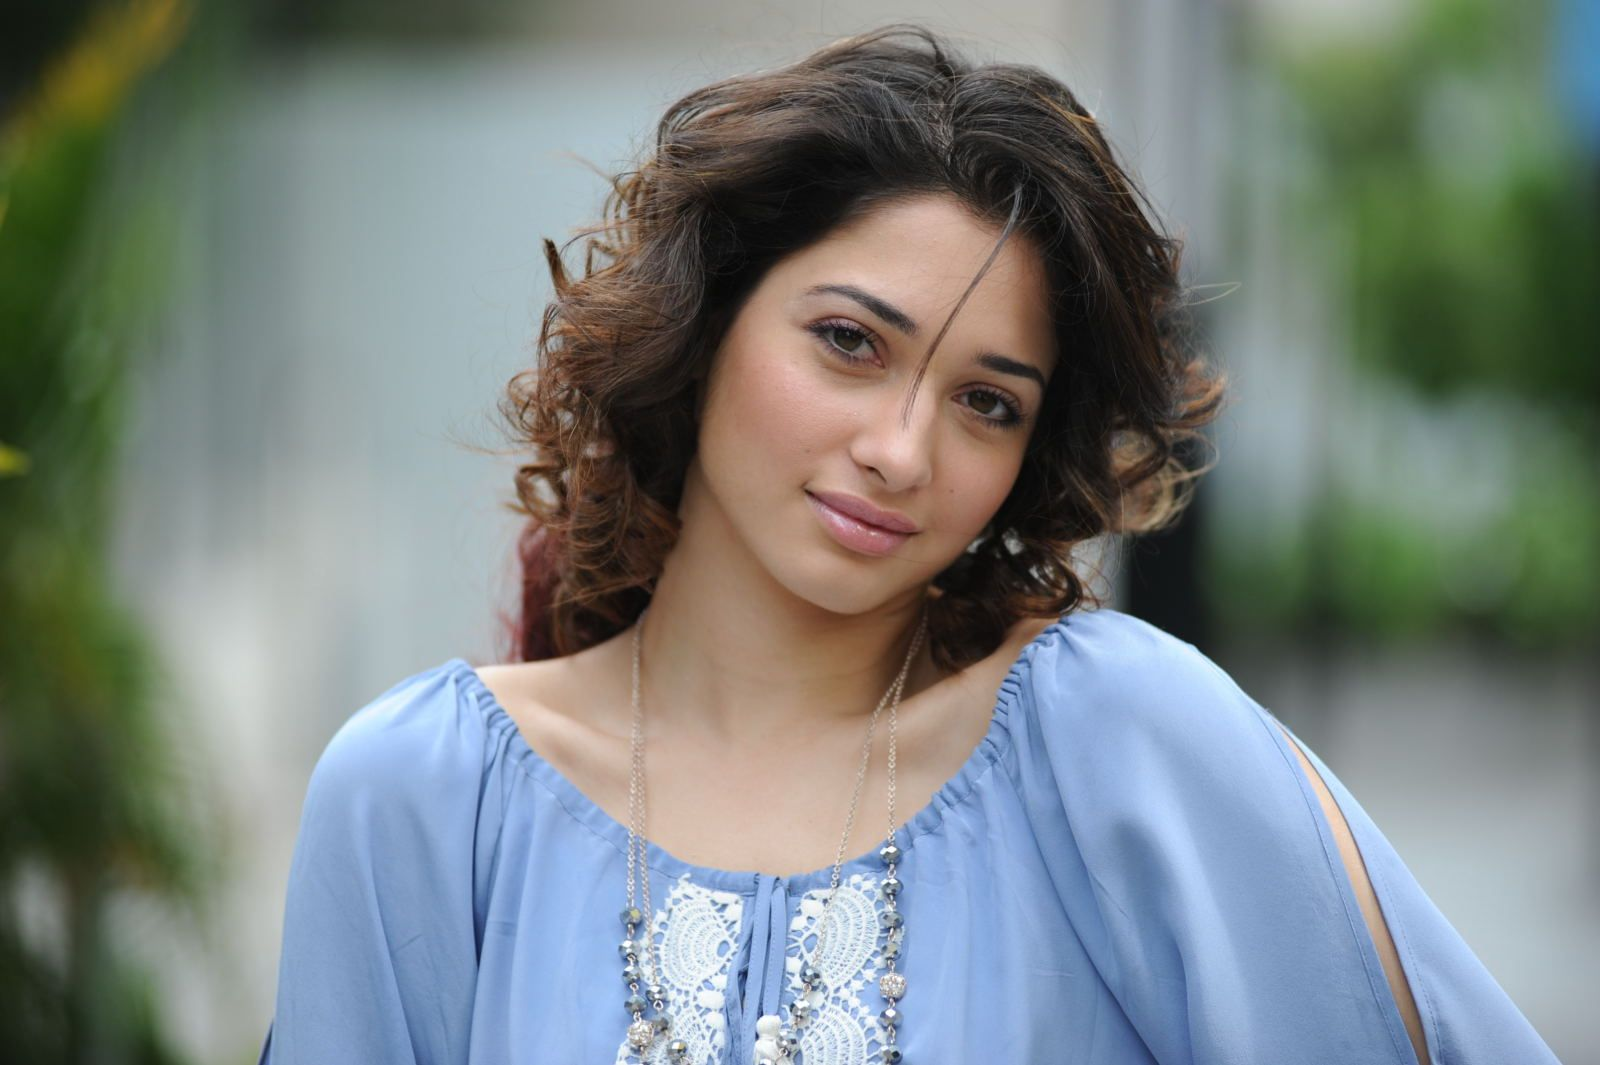 Tamanna bhatia wide wallpapers